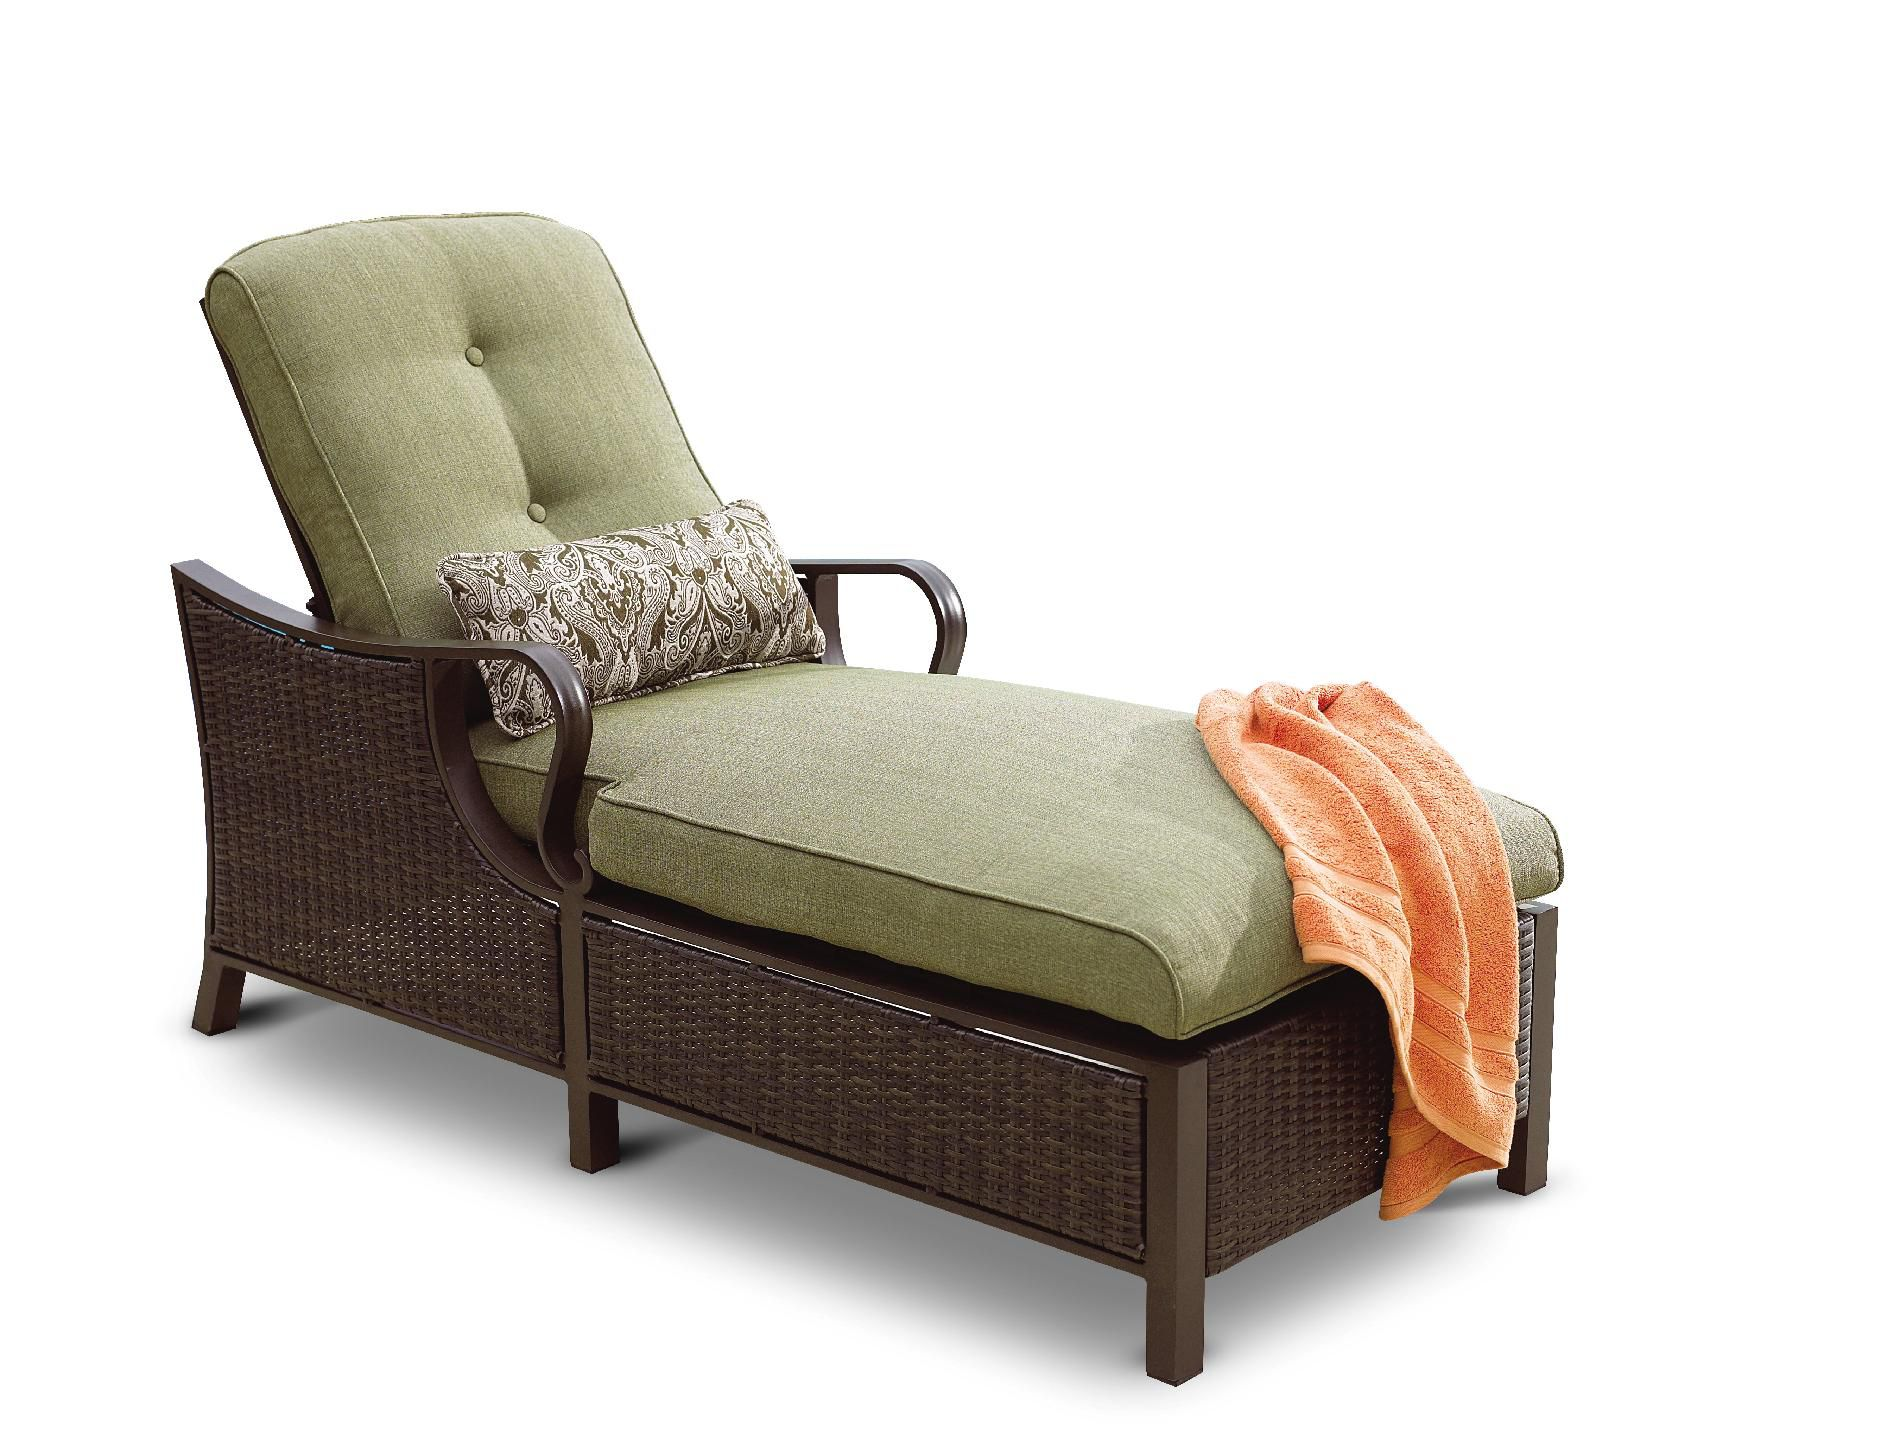 La-Z-Boy Outdoor Peyton Chaise Lounge* Limited Availability